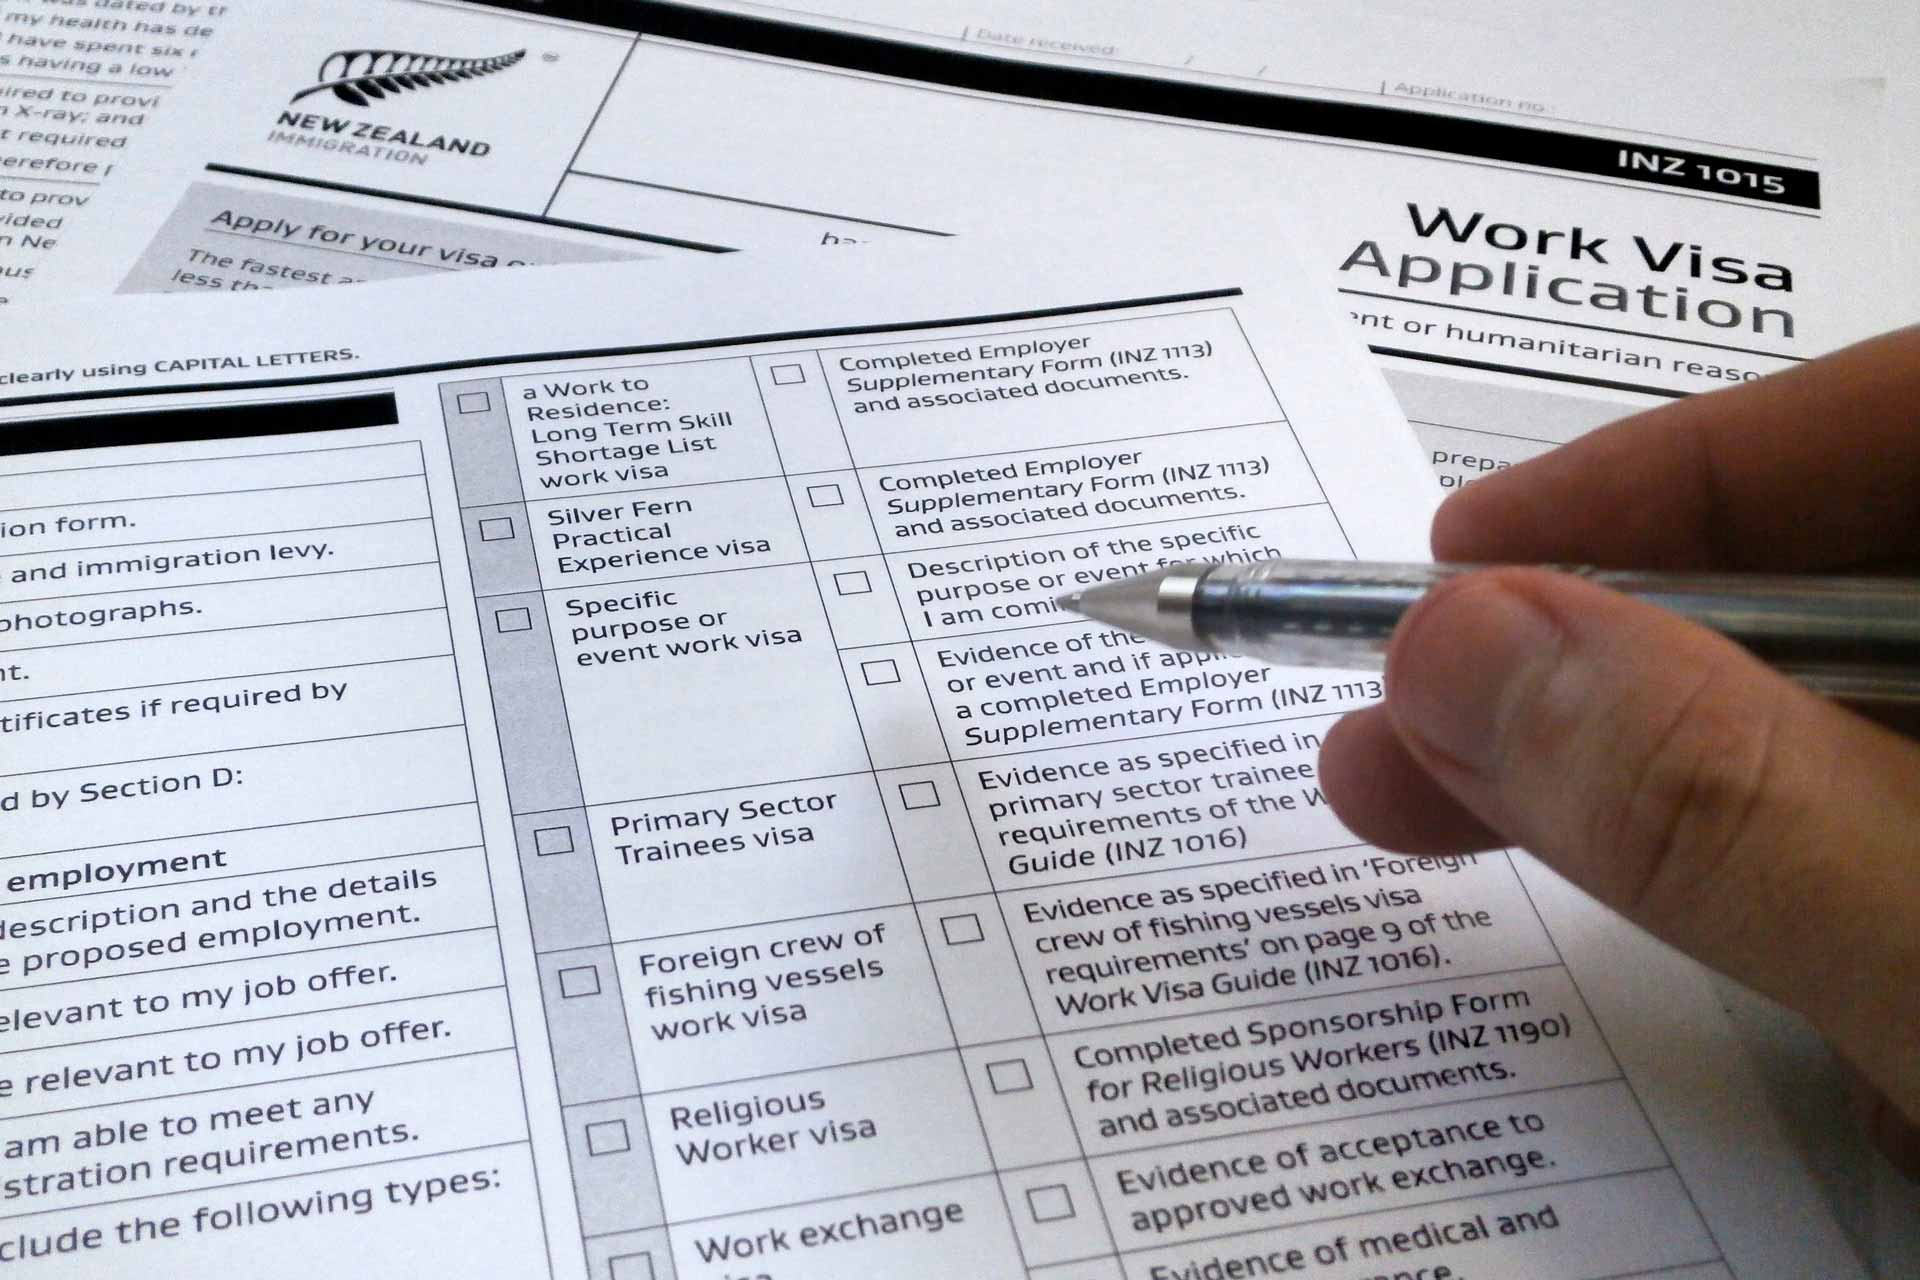 Streamlined Work Visa Processing If You Stay With The Same Employer